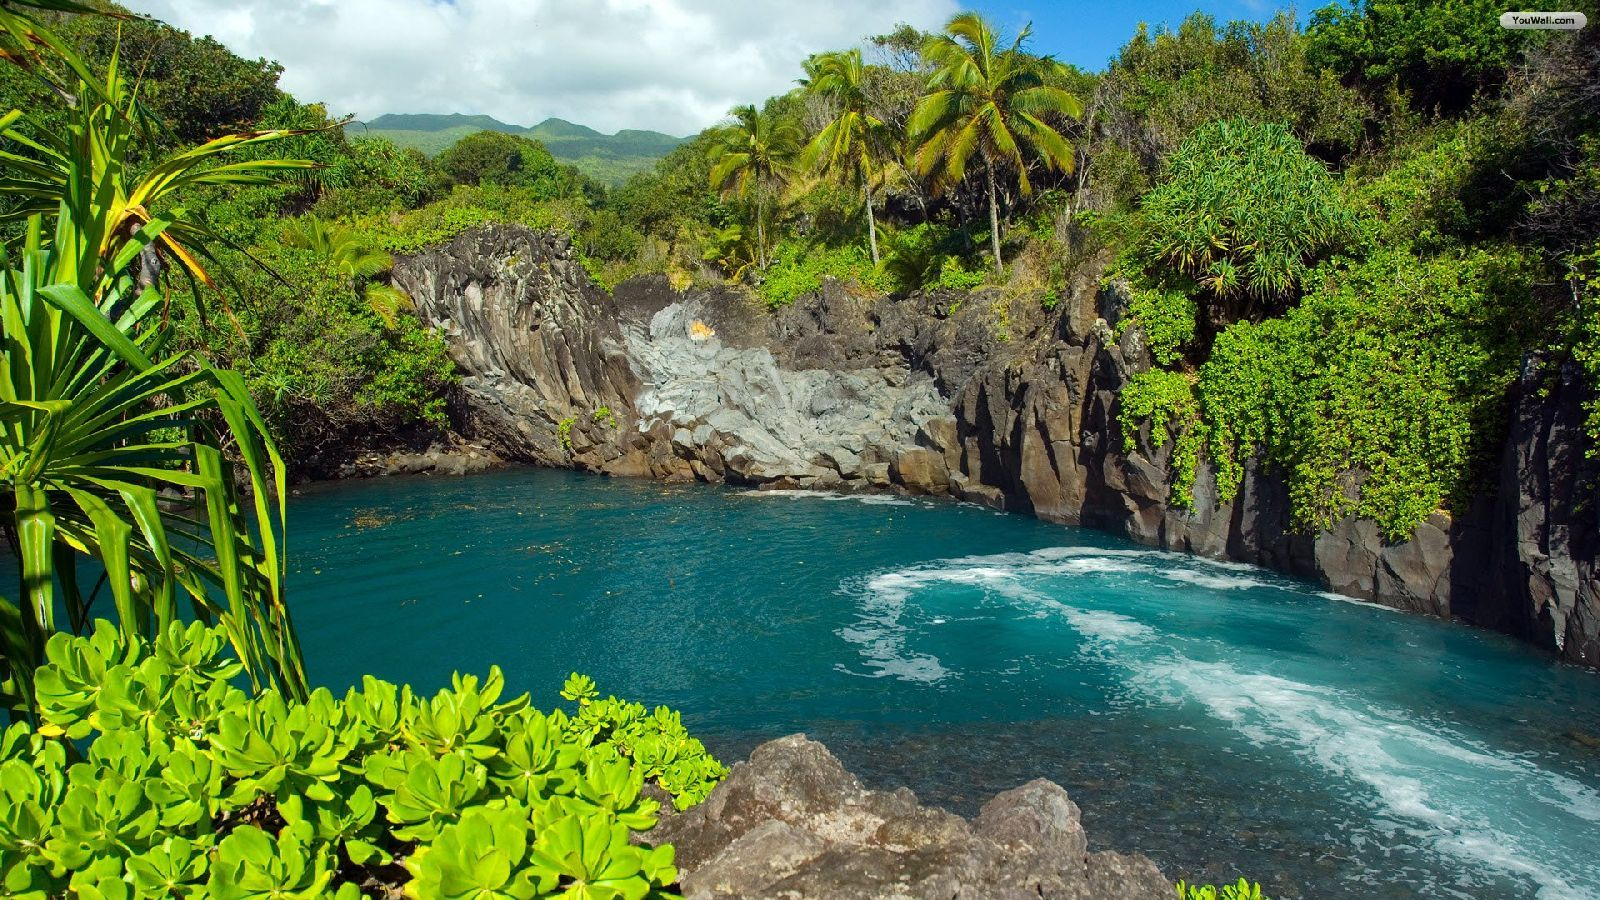 Tropical places tropical places youwall landscape for Tropical vacation places in the us